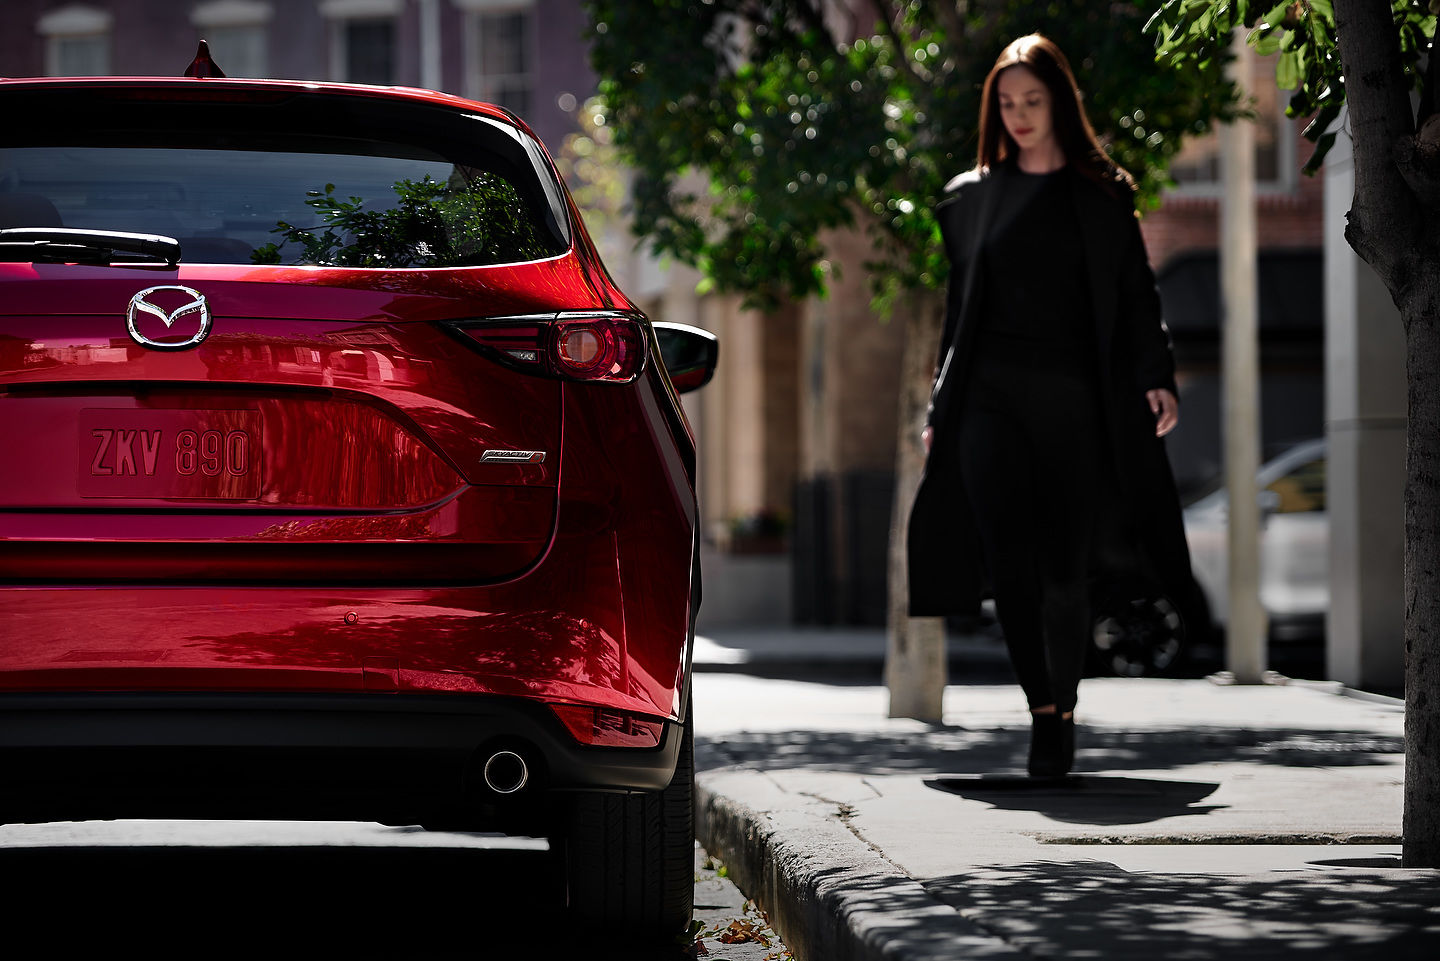 The Mazda CX-5 Diesel unveiled in New York